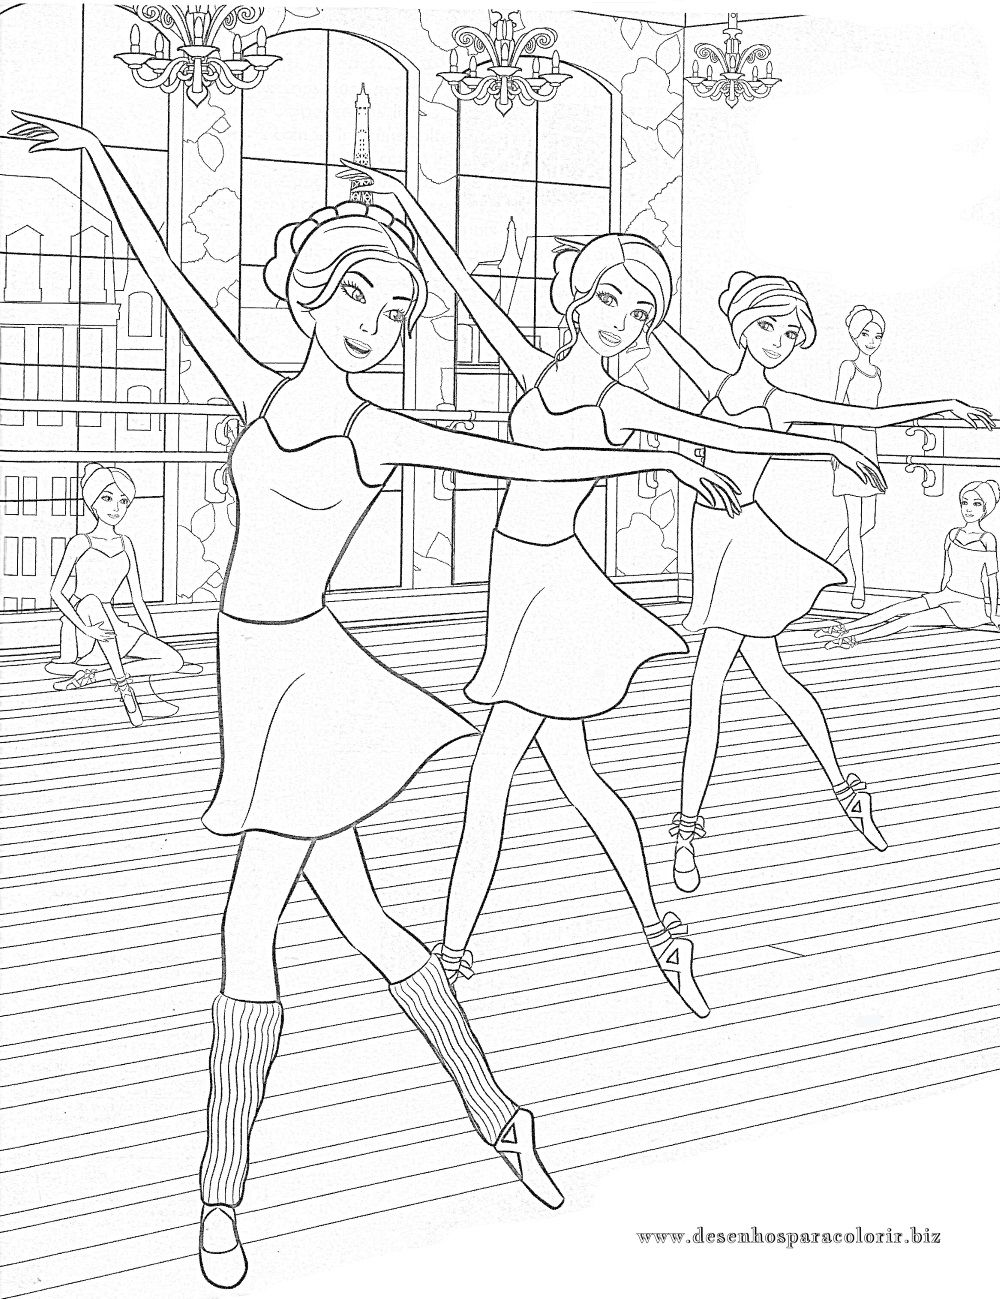 Pin By Kassandra On Coloring Dance Coloring Pages Coloring Pages Barbie Coloring Pages